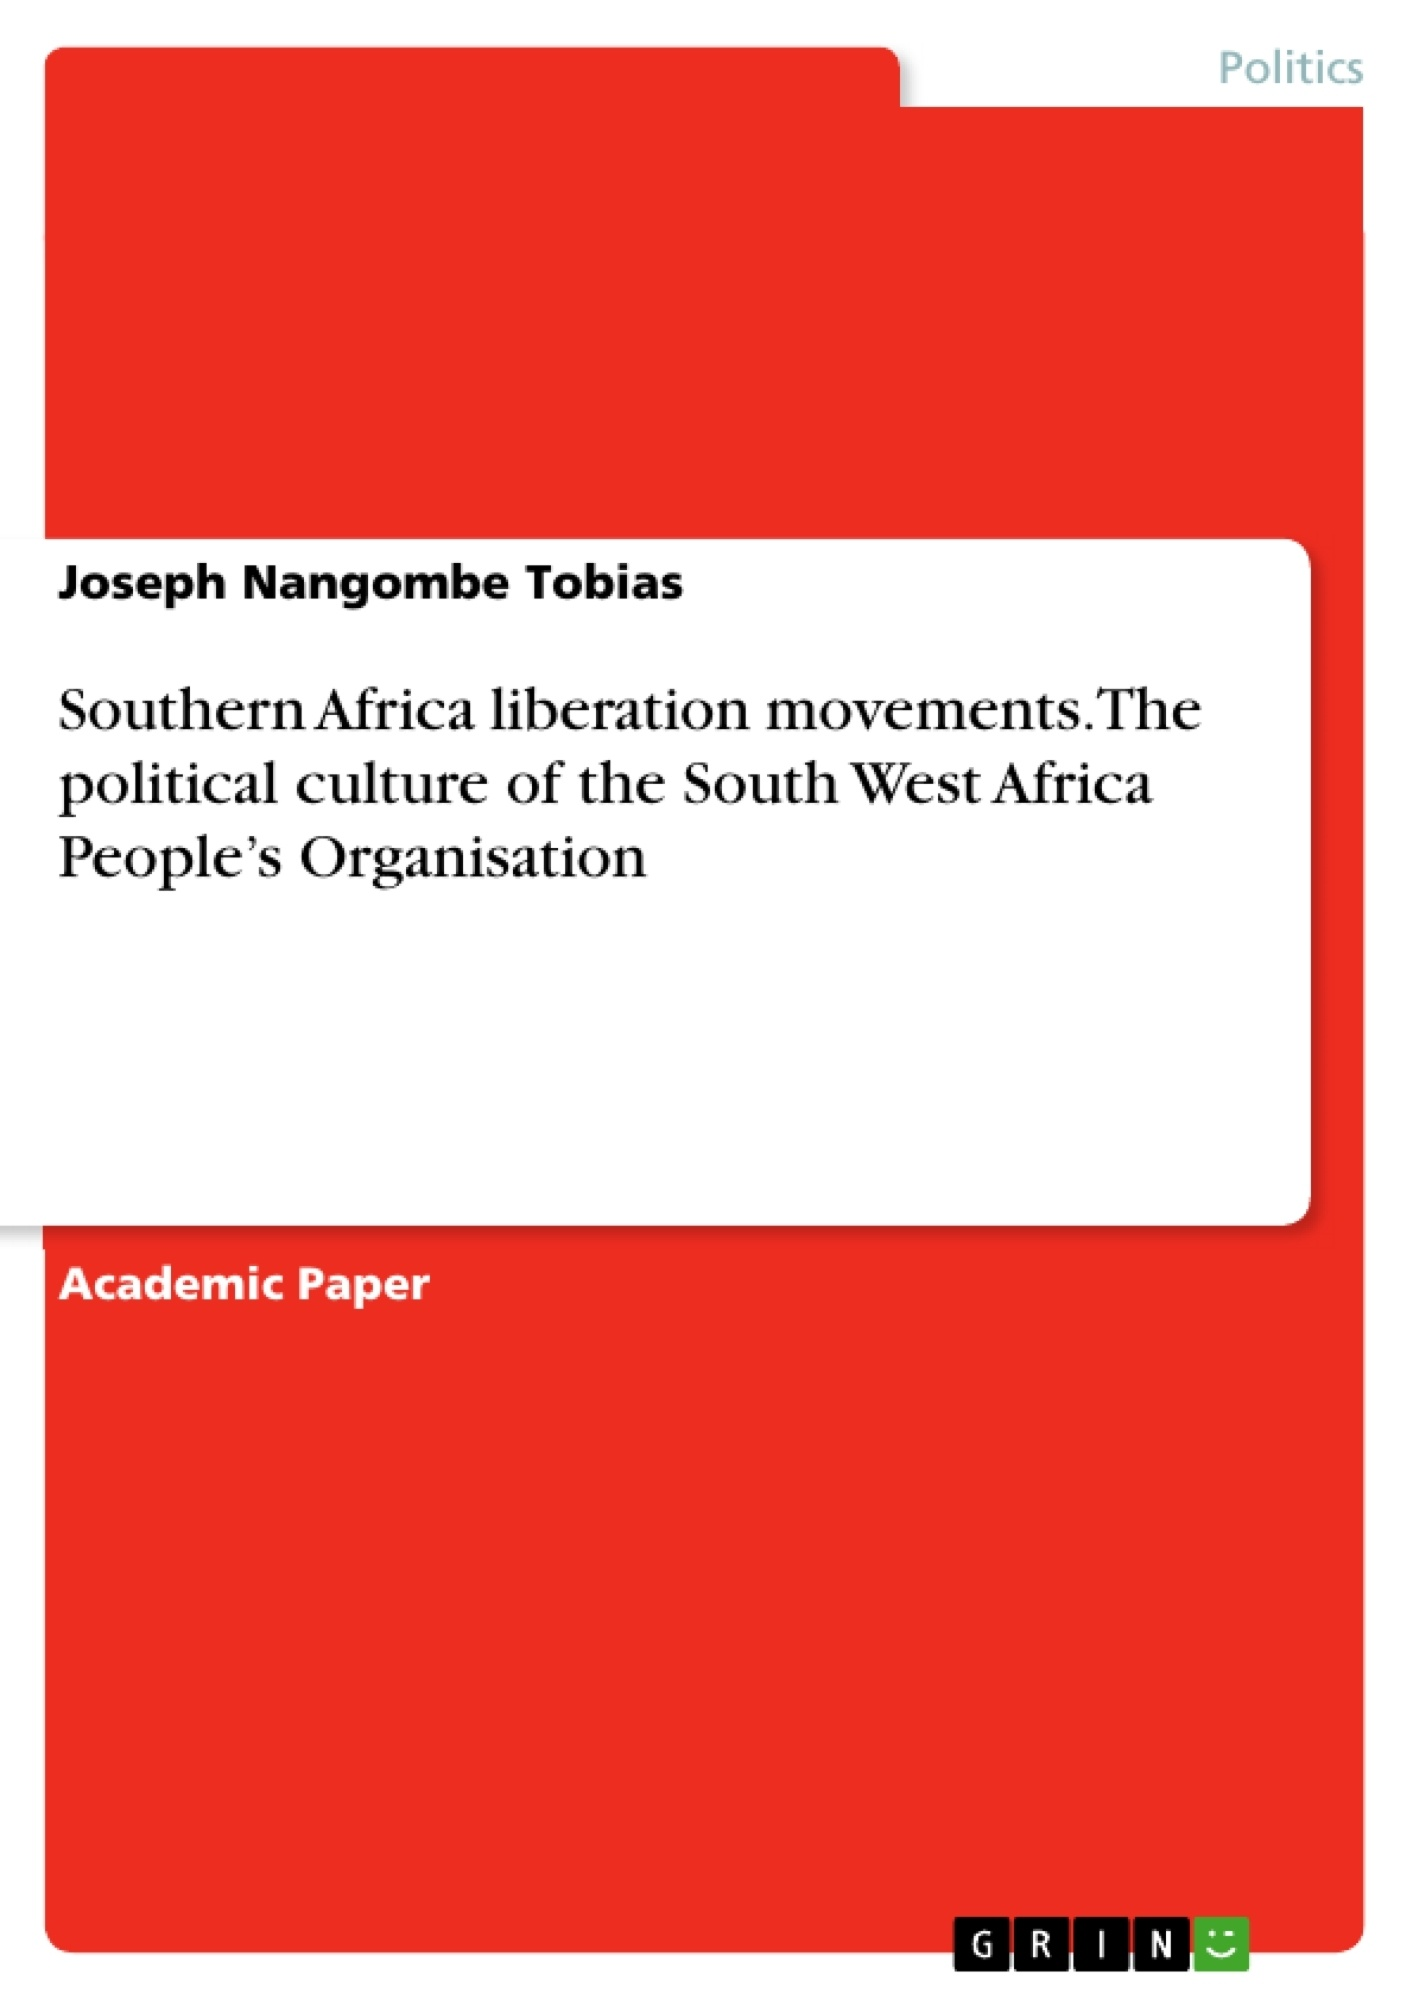 Title: Southern Africa liberation movements. The political culture of the South West Africa People's Organisation